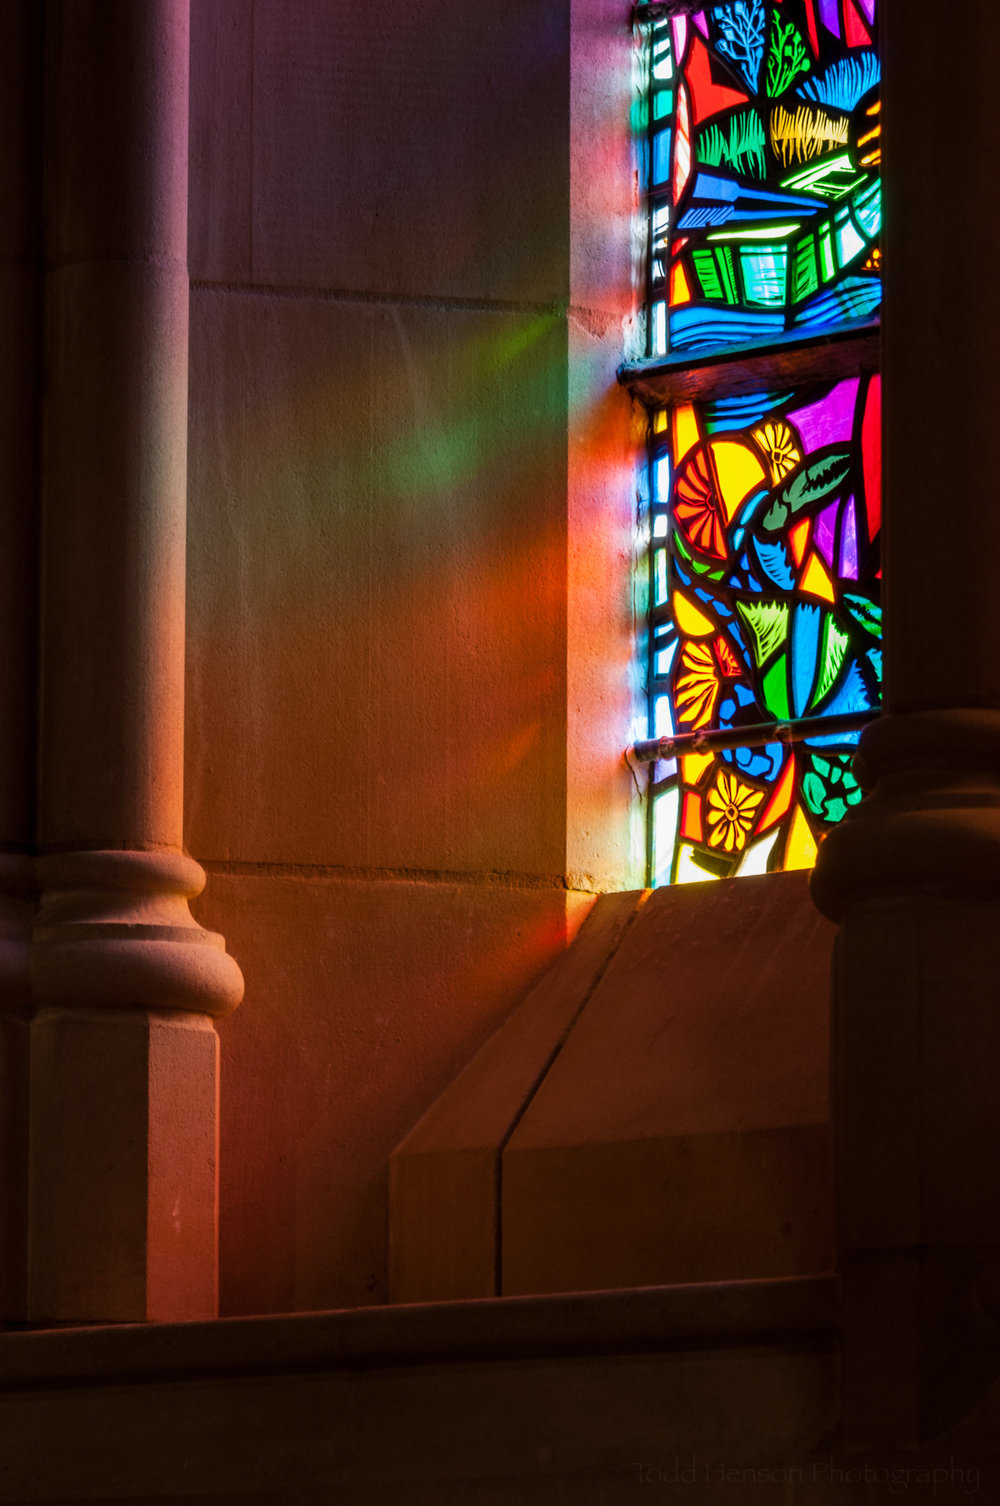 Light shining through a stained glass window.